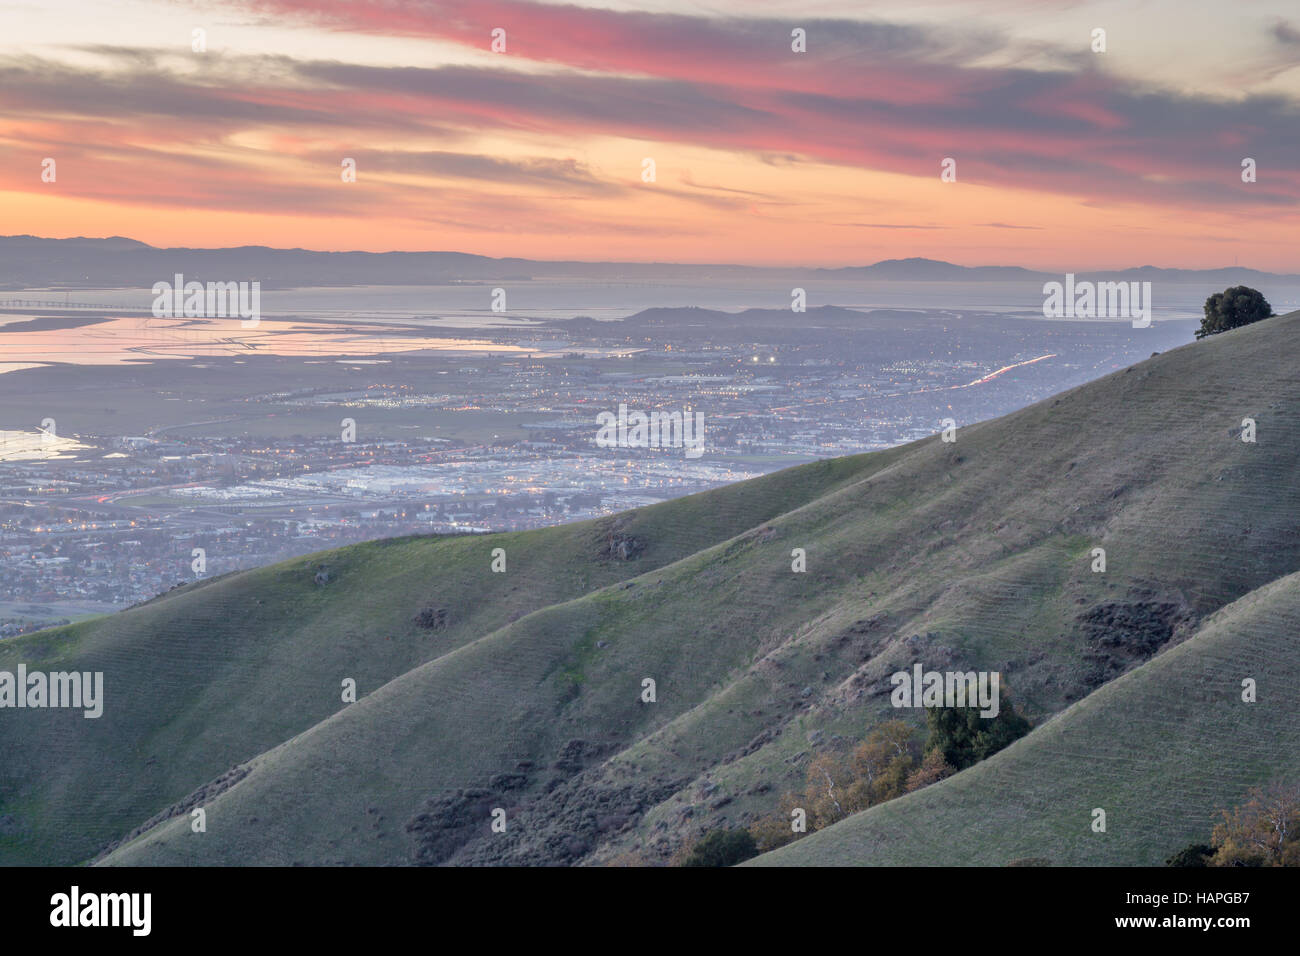 Silicon Valley and Rolling Hills at Sunset. Monument Peak, Ed R. Levin County Park, Milpitas, California, USA. - Stock Image